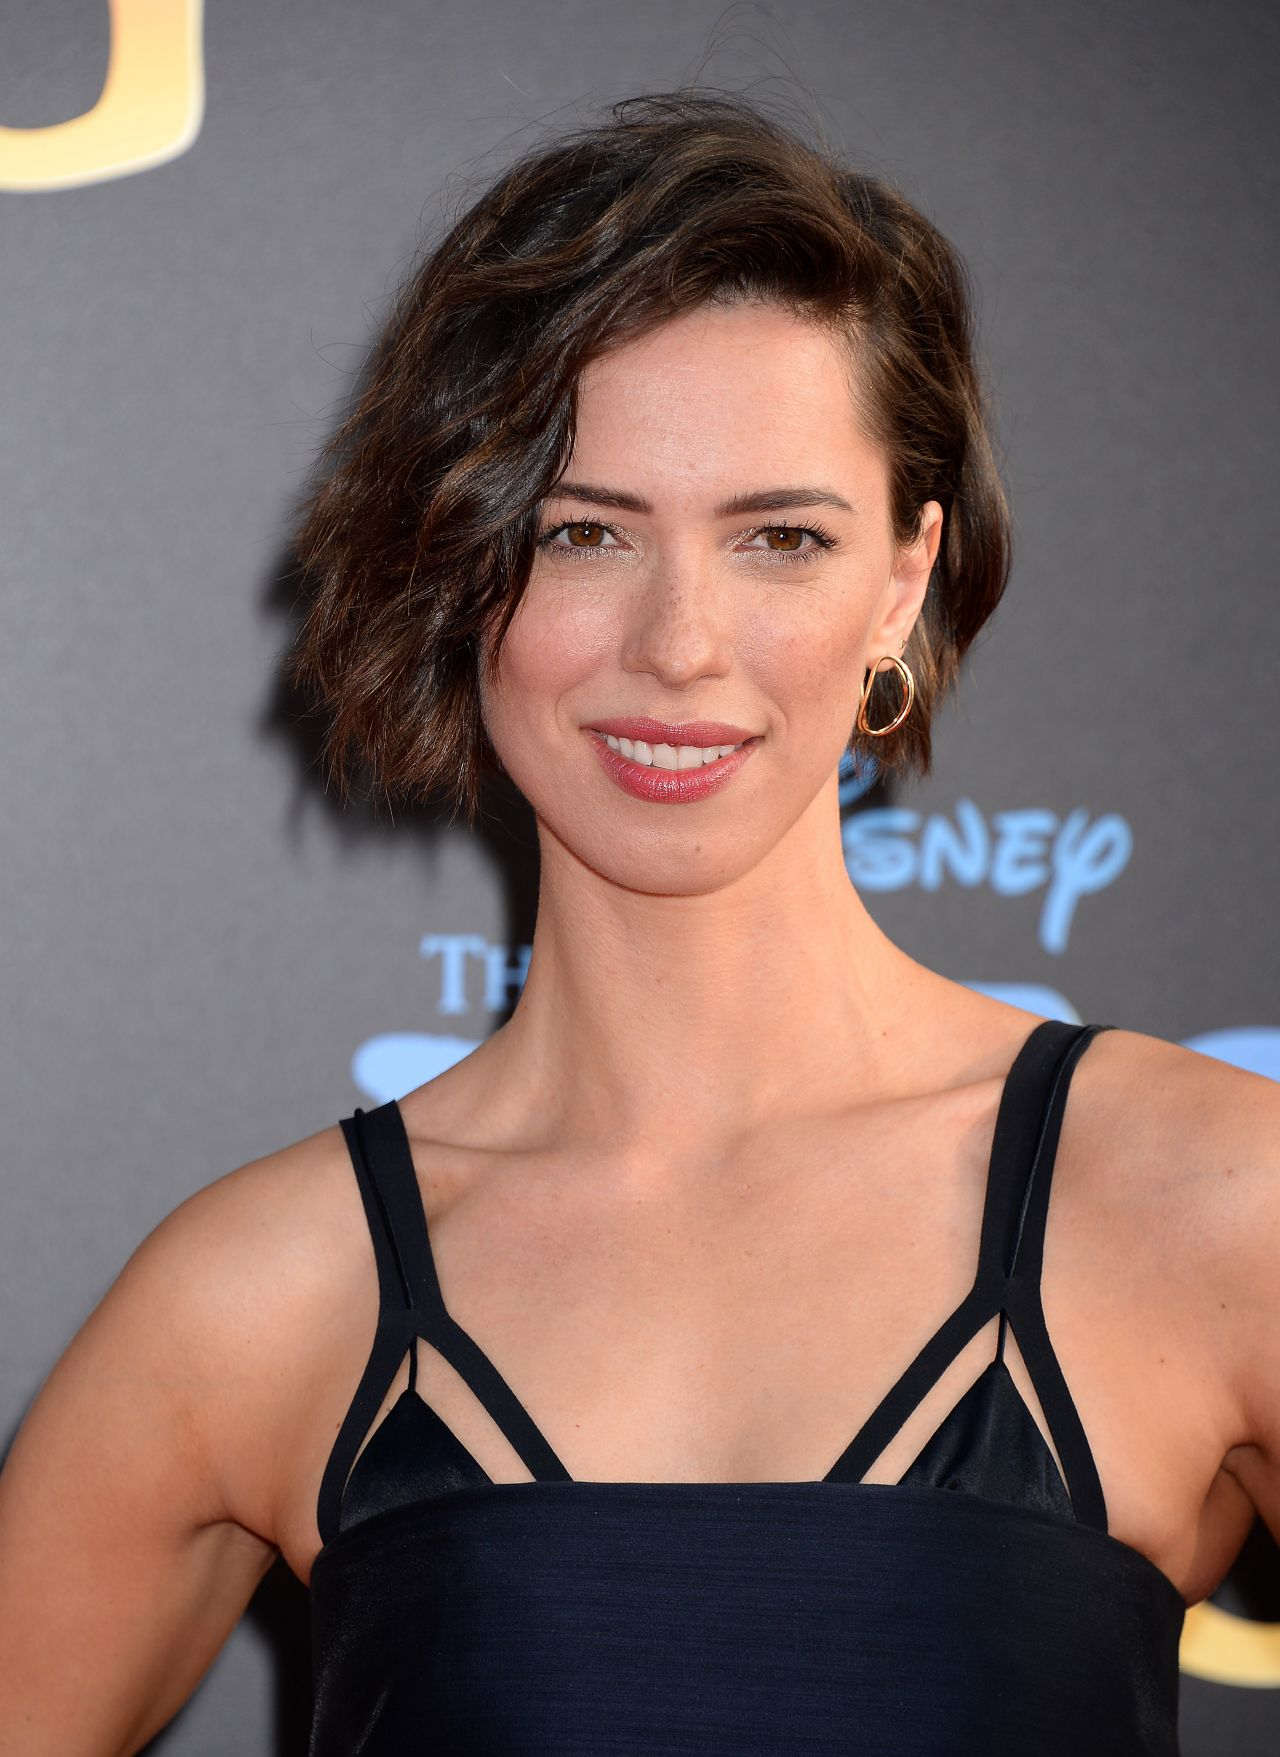 Feet Rebecca Hall  nudes (94 fotos), YouTube, braless